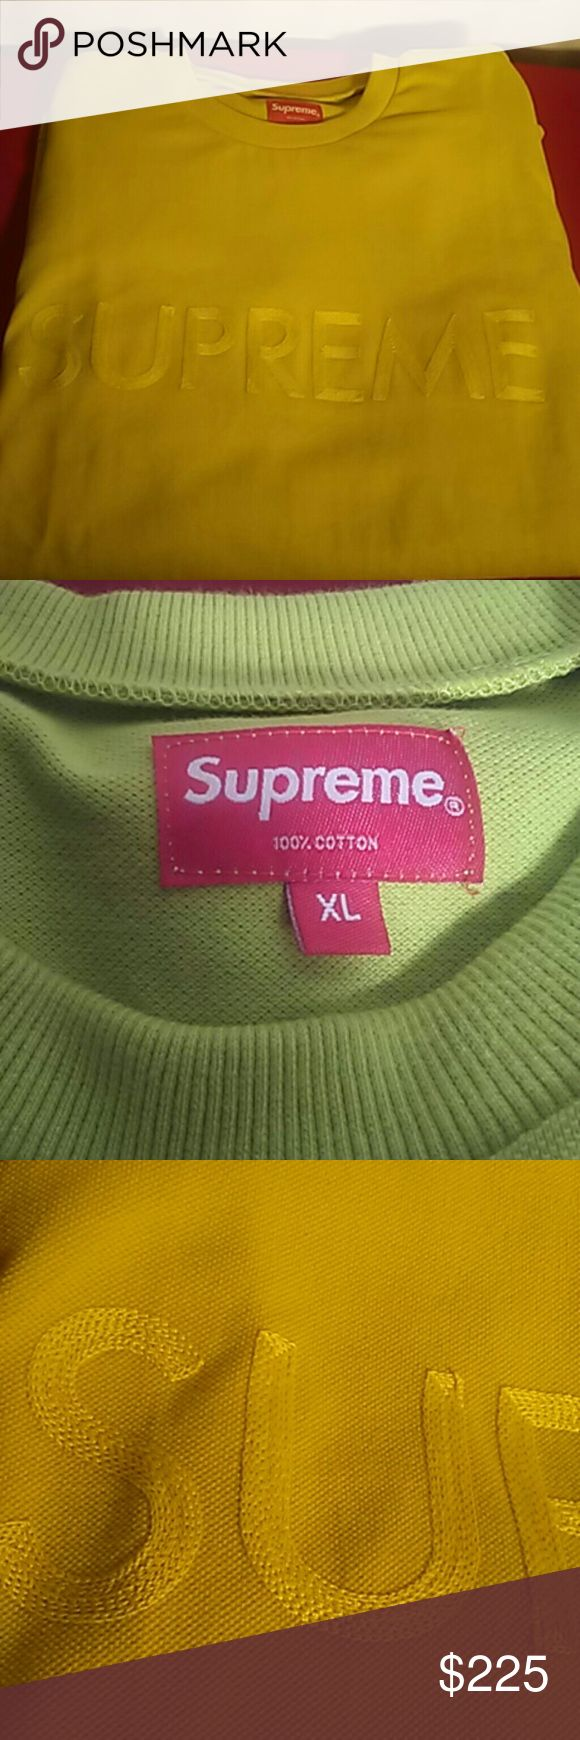 Supreme ss17 acid green sweater rare sold out 100% authentic supreme ss17 acid green sweater Supreme Sweaters Crewneck